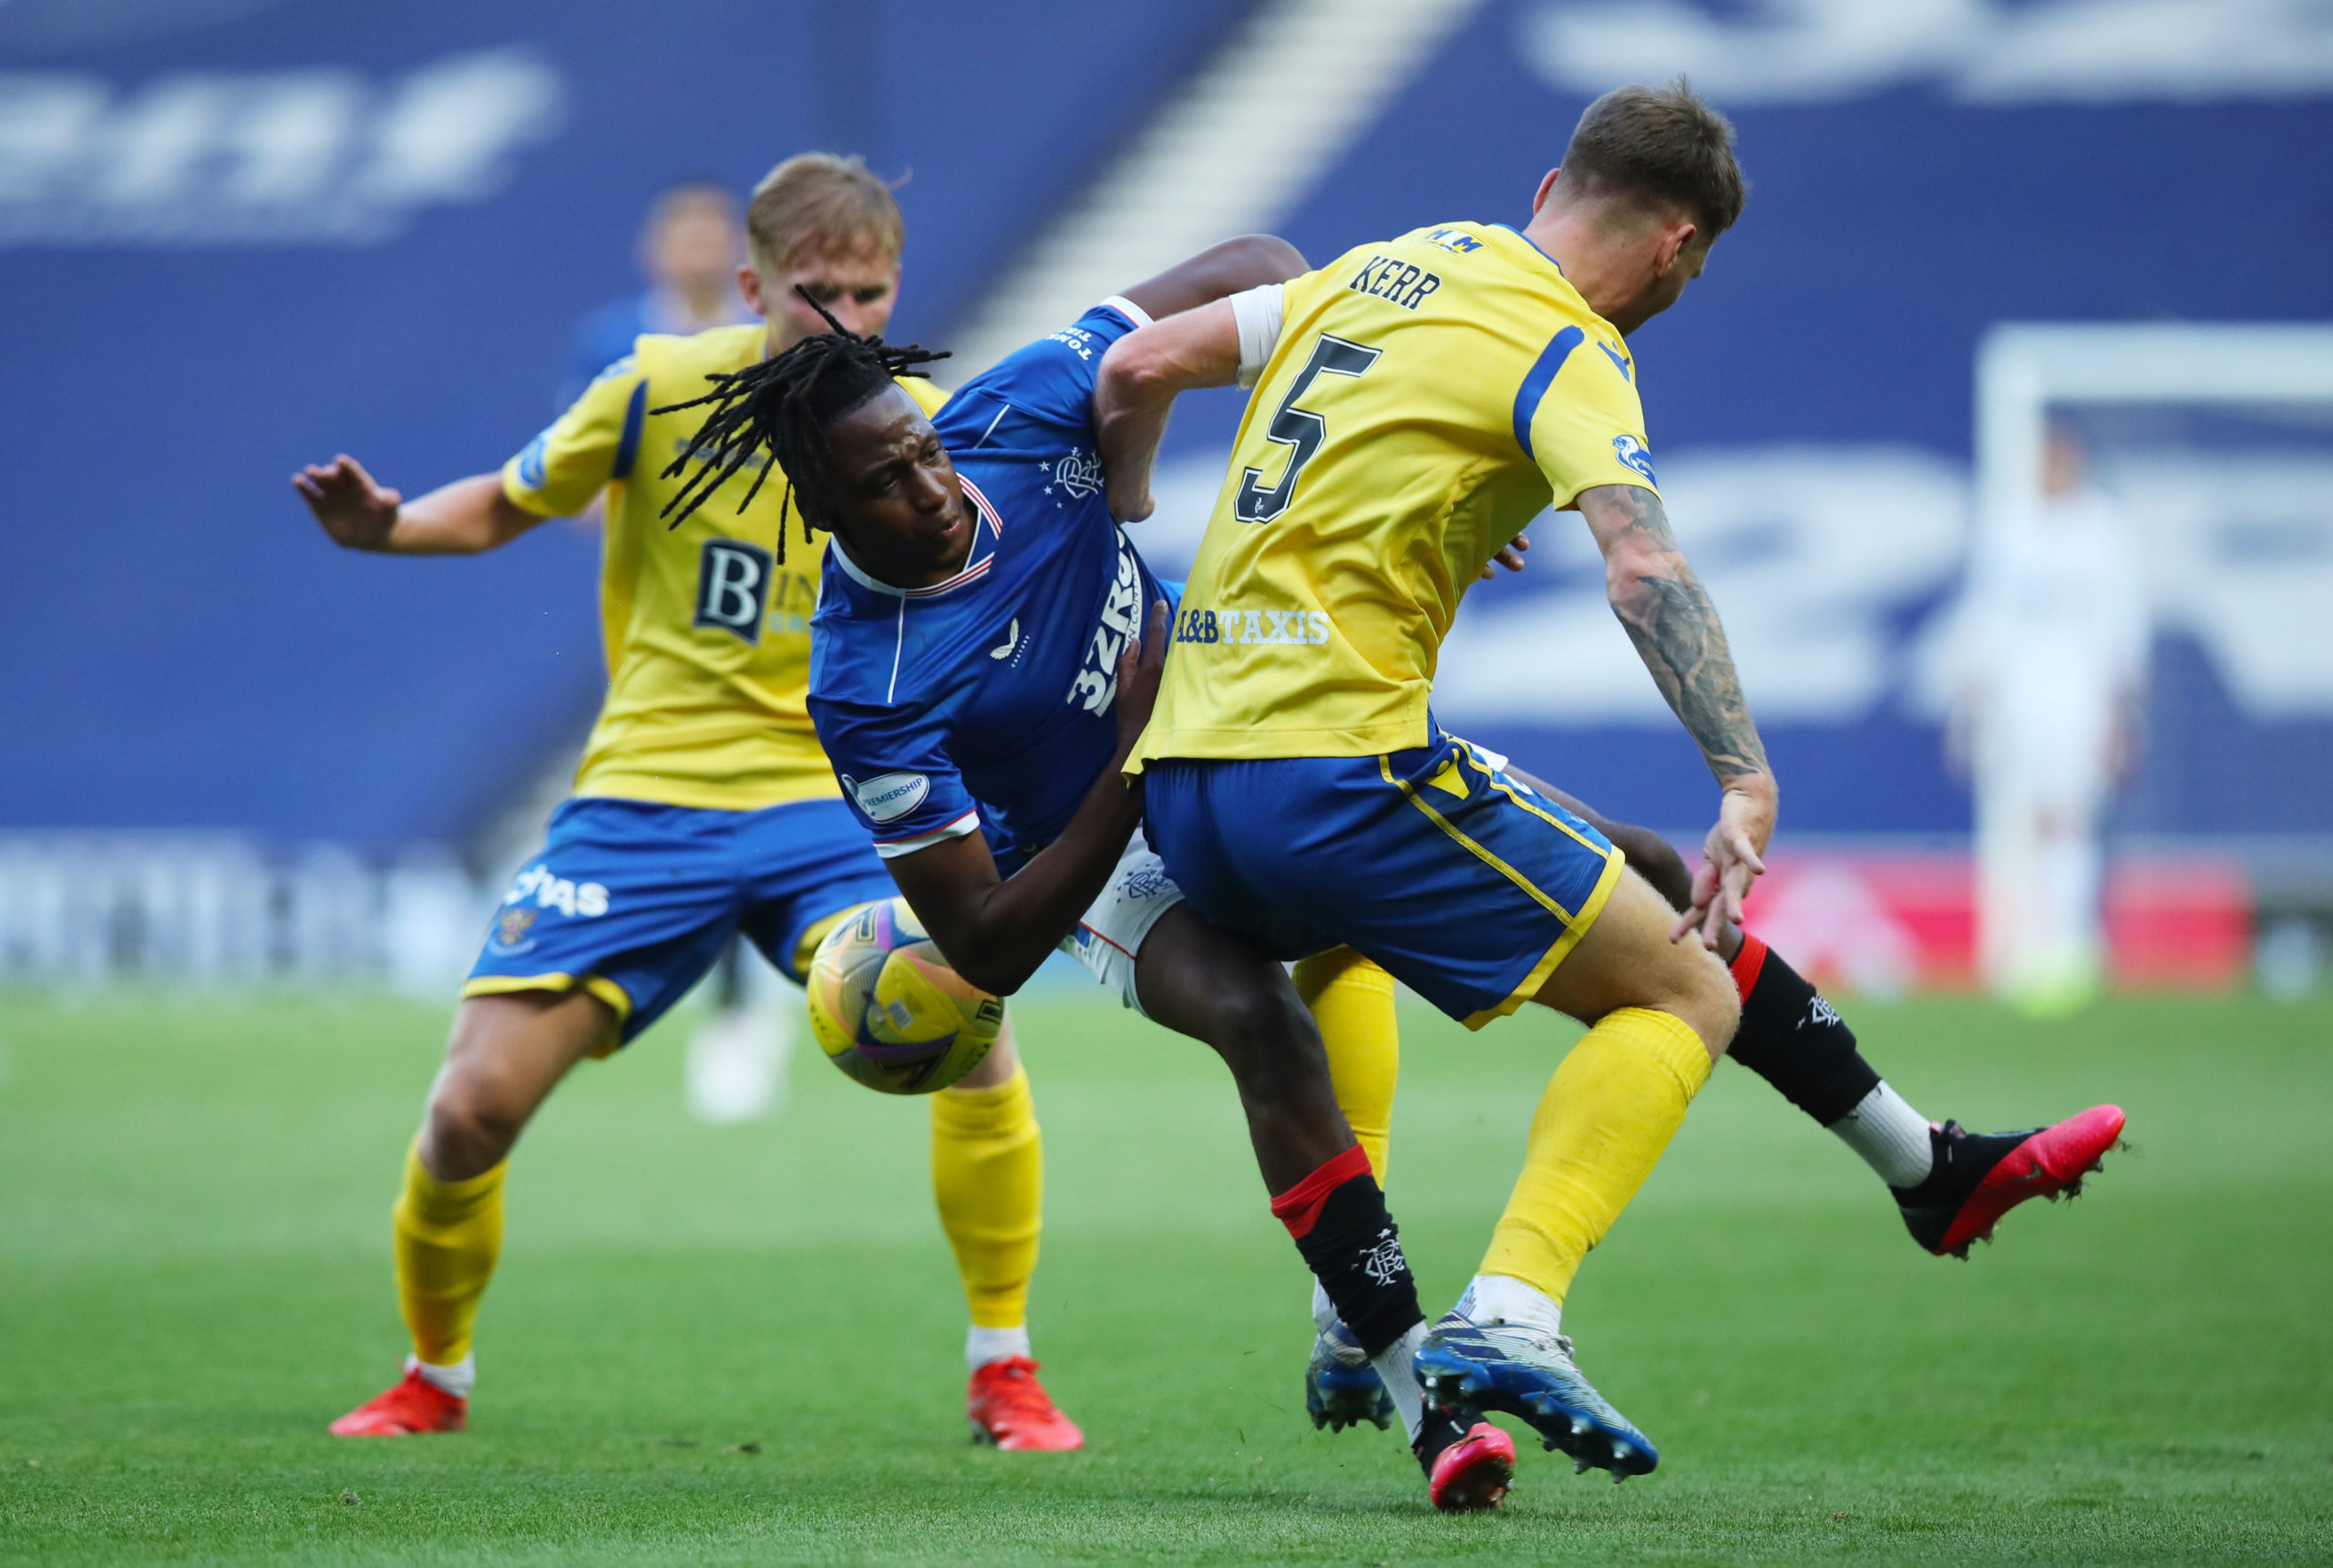 Jason Kerr blocks Joe Aribo.